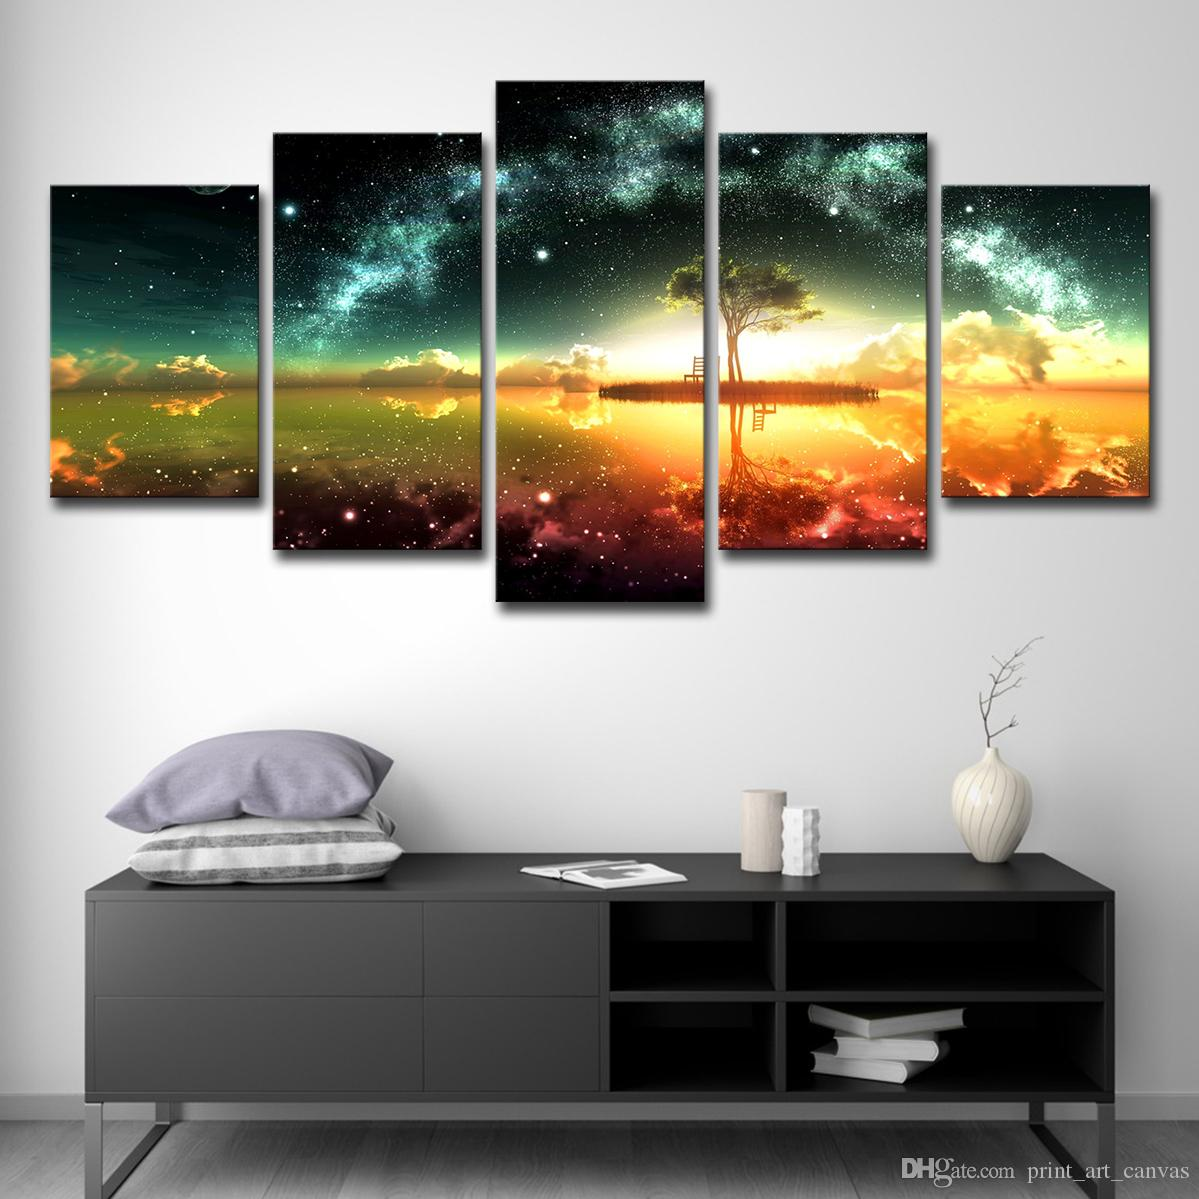 Home Decor Pictures Vintage Painting HD Print Poster 5 Panels Beautiful Scenery And Tree Canvas Wall Art Photo